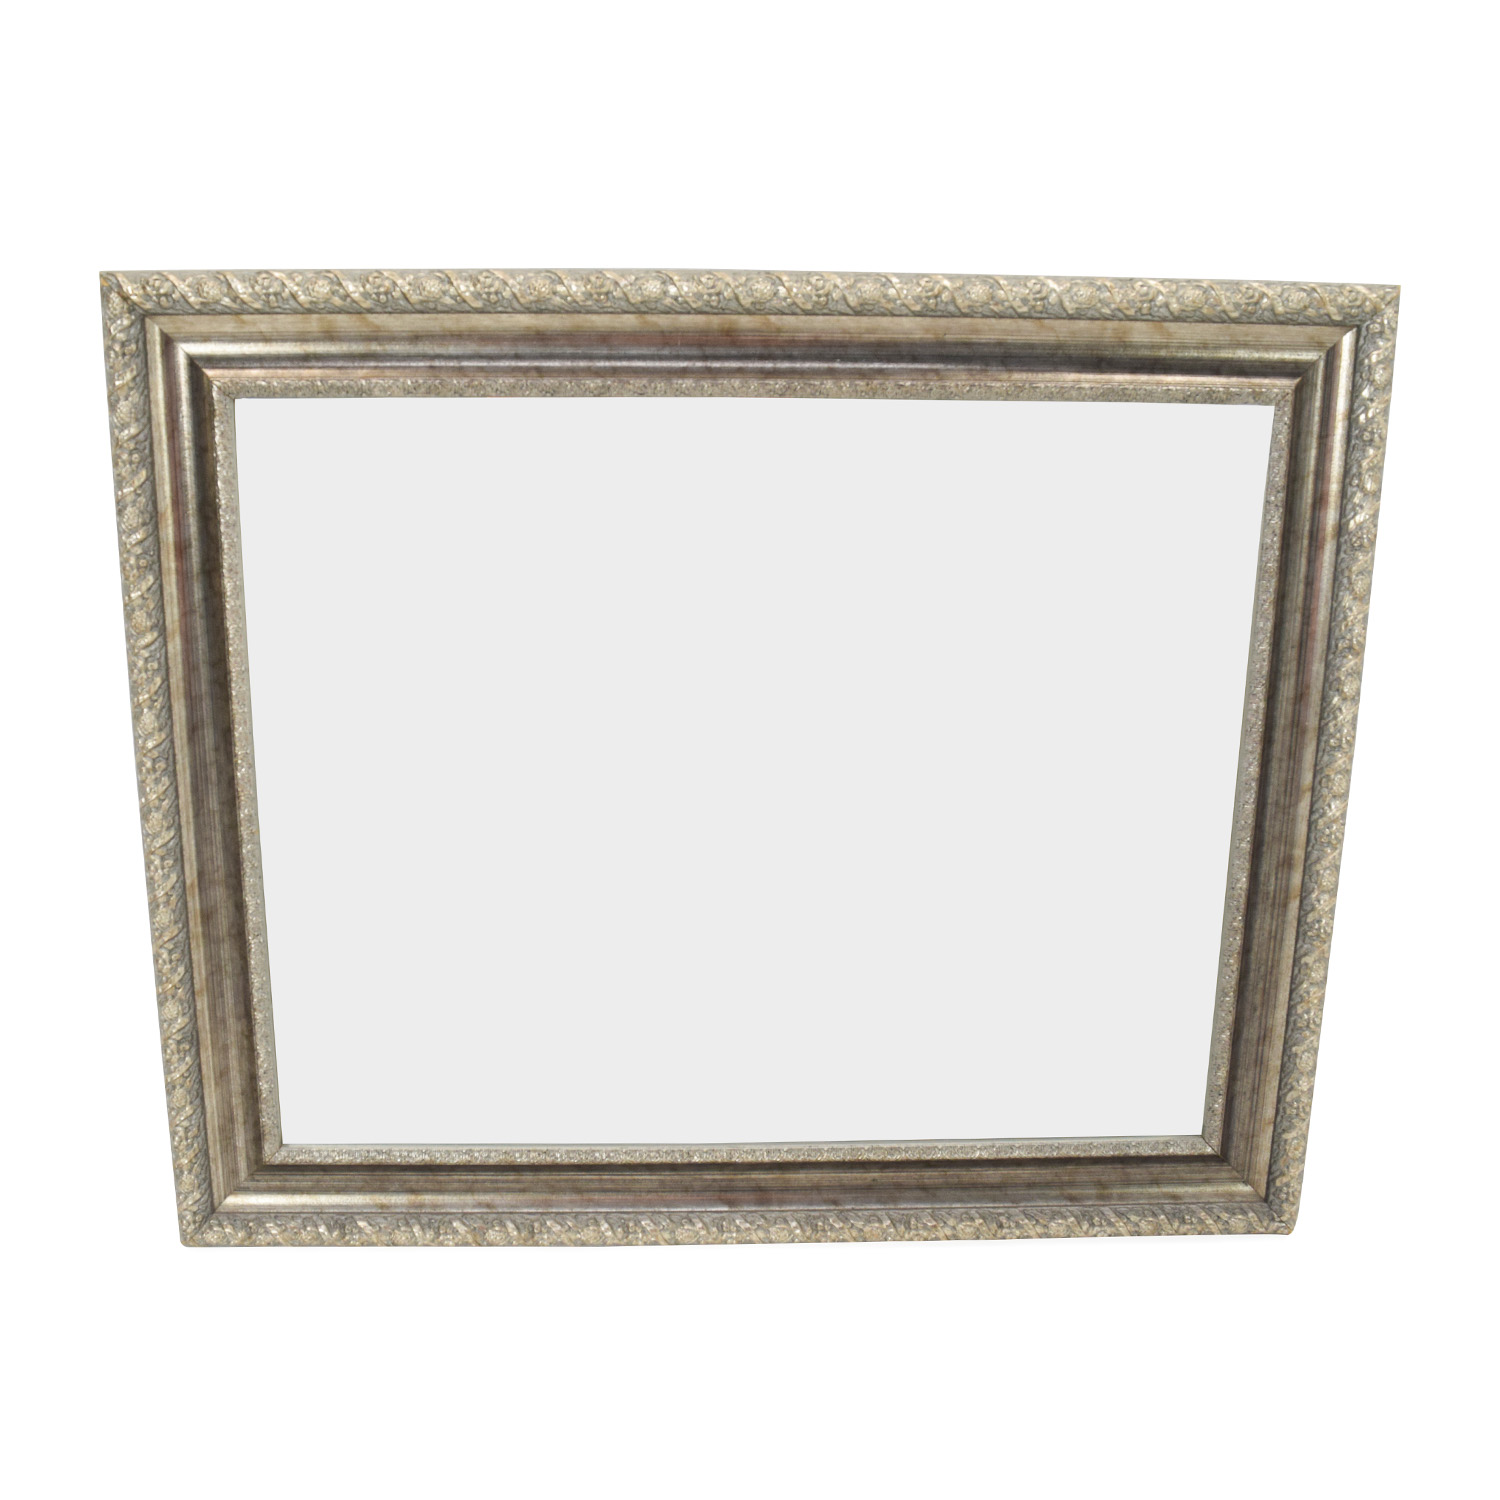 Gold Frame Mirror discount